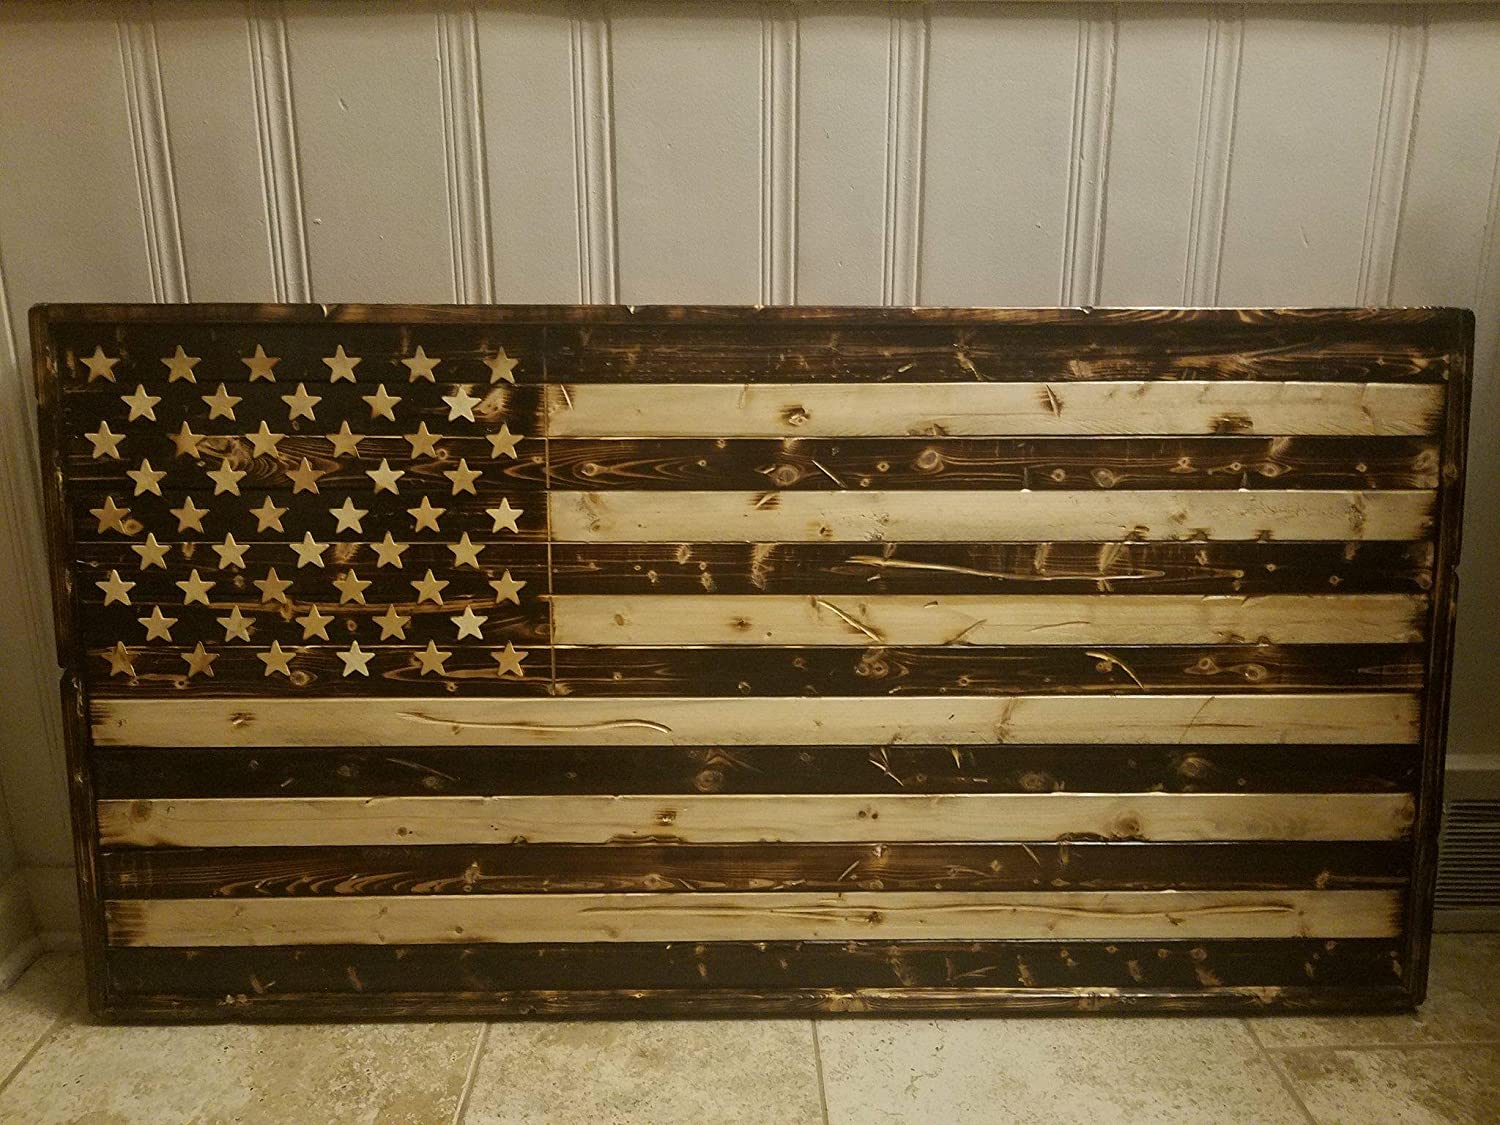 Amazon.com: American Flag Wall Decor  Light and Dark  Rustic